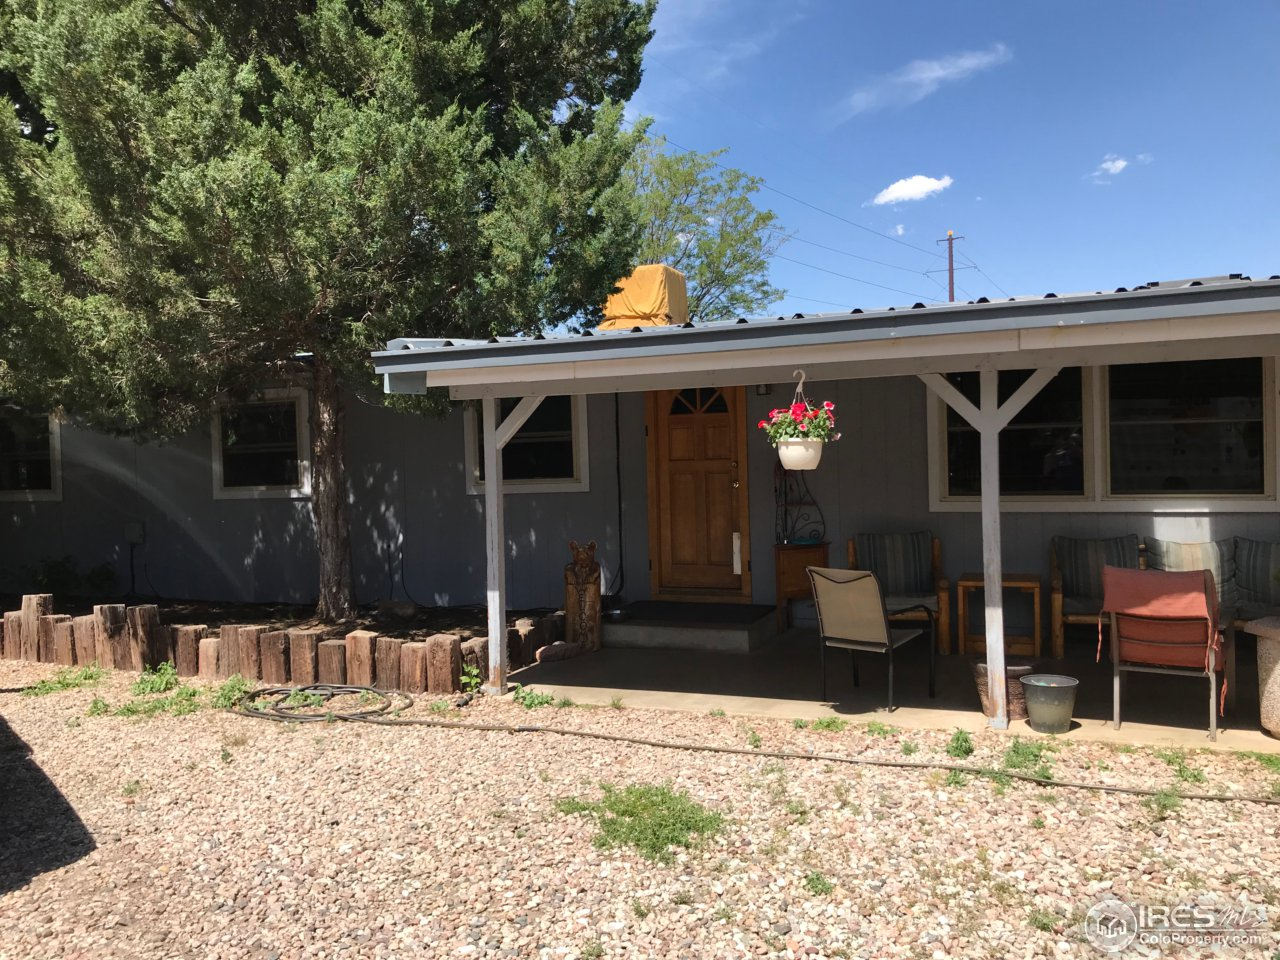 Urban farm in FoCo!Fully fenced 1/2 acre of manicured lawn and great shade trees, with chicken coops, raised bed gardens, oversize 2 car garagew/220, plenty of RV Parking & backs to horse pasture. Modular home on permanent concrete foundation w/ crawl space, upgraded copper wiring & plumbing, tankless water heater, new furnace, remodeled kitchen w/stainless steel appliances and farm sink. Open floor plan with aspen plank wall decor in living room. May be able to add in-law up to 600sq ft.